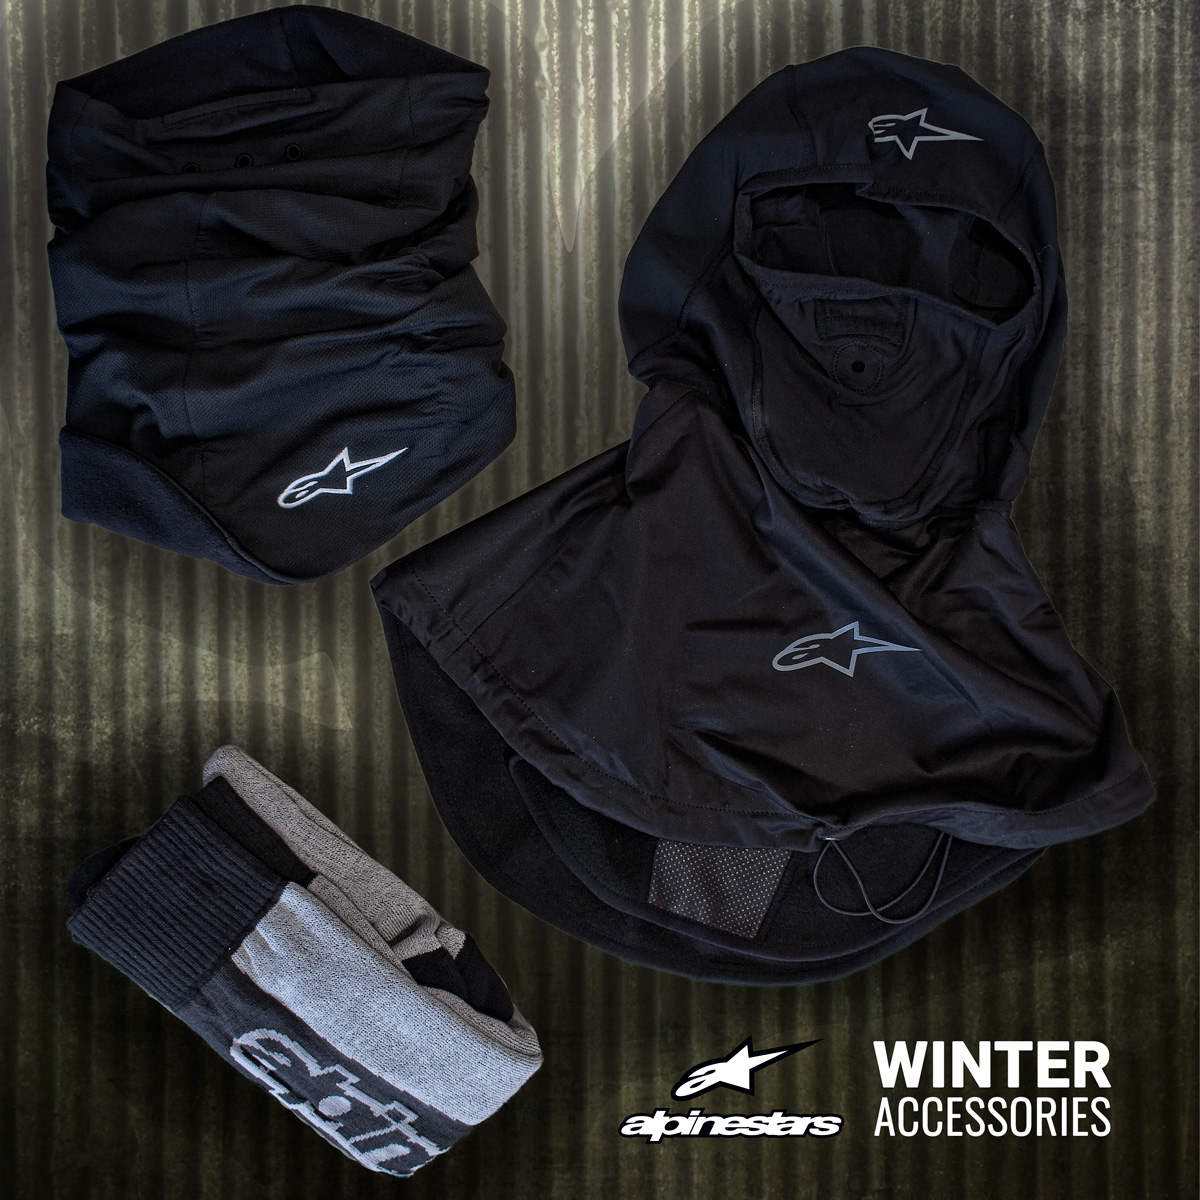 Winter Motorcycle Clothing Accessories: Discover the Alpinestars Range